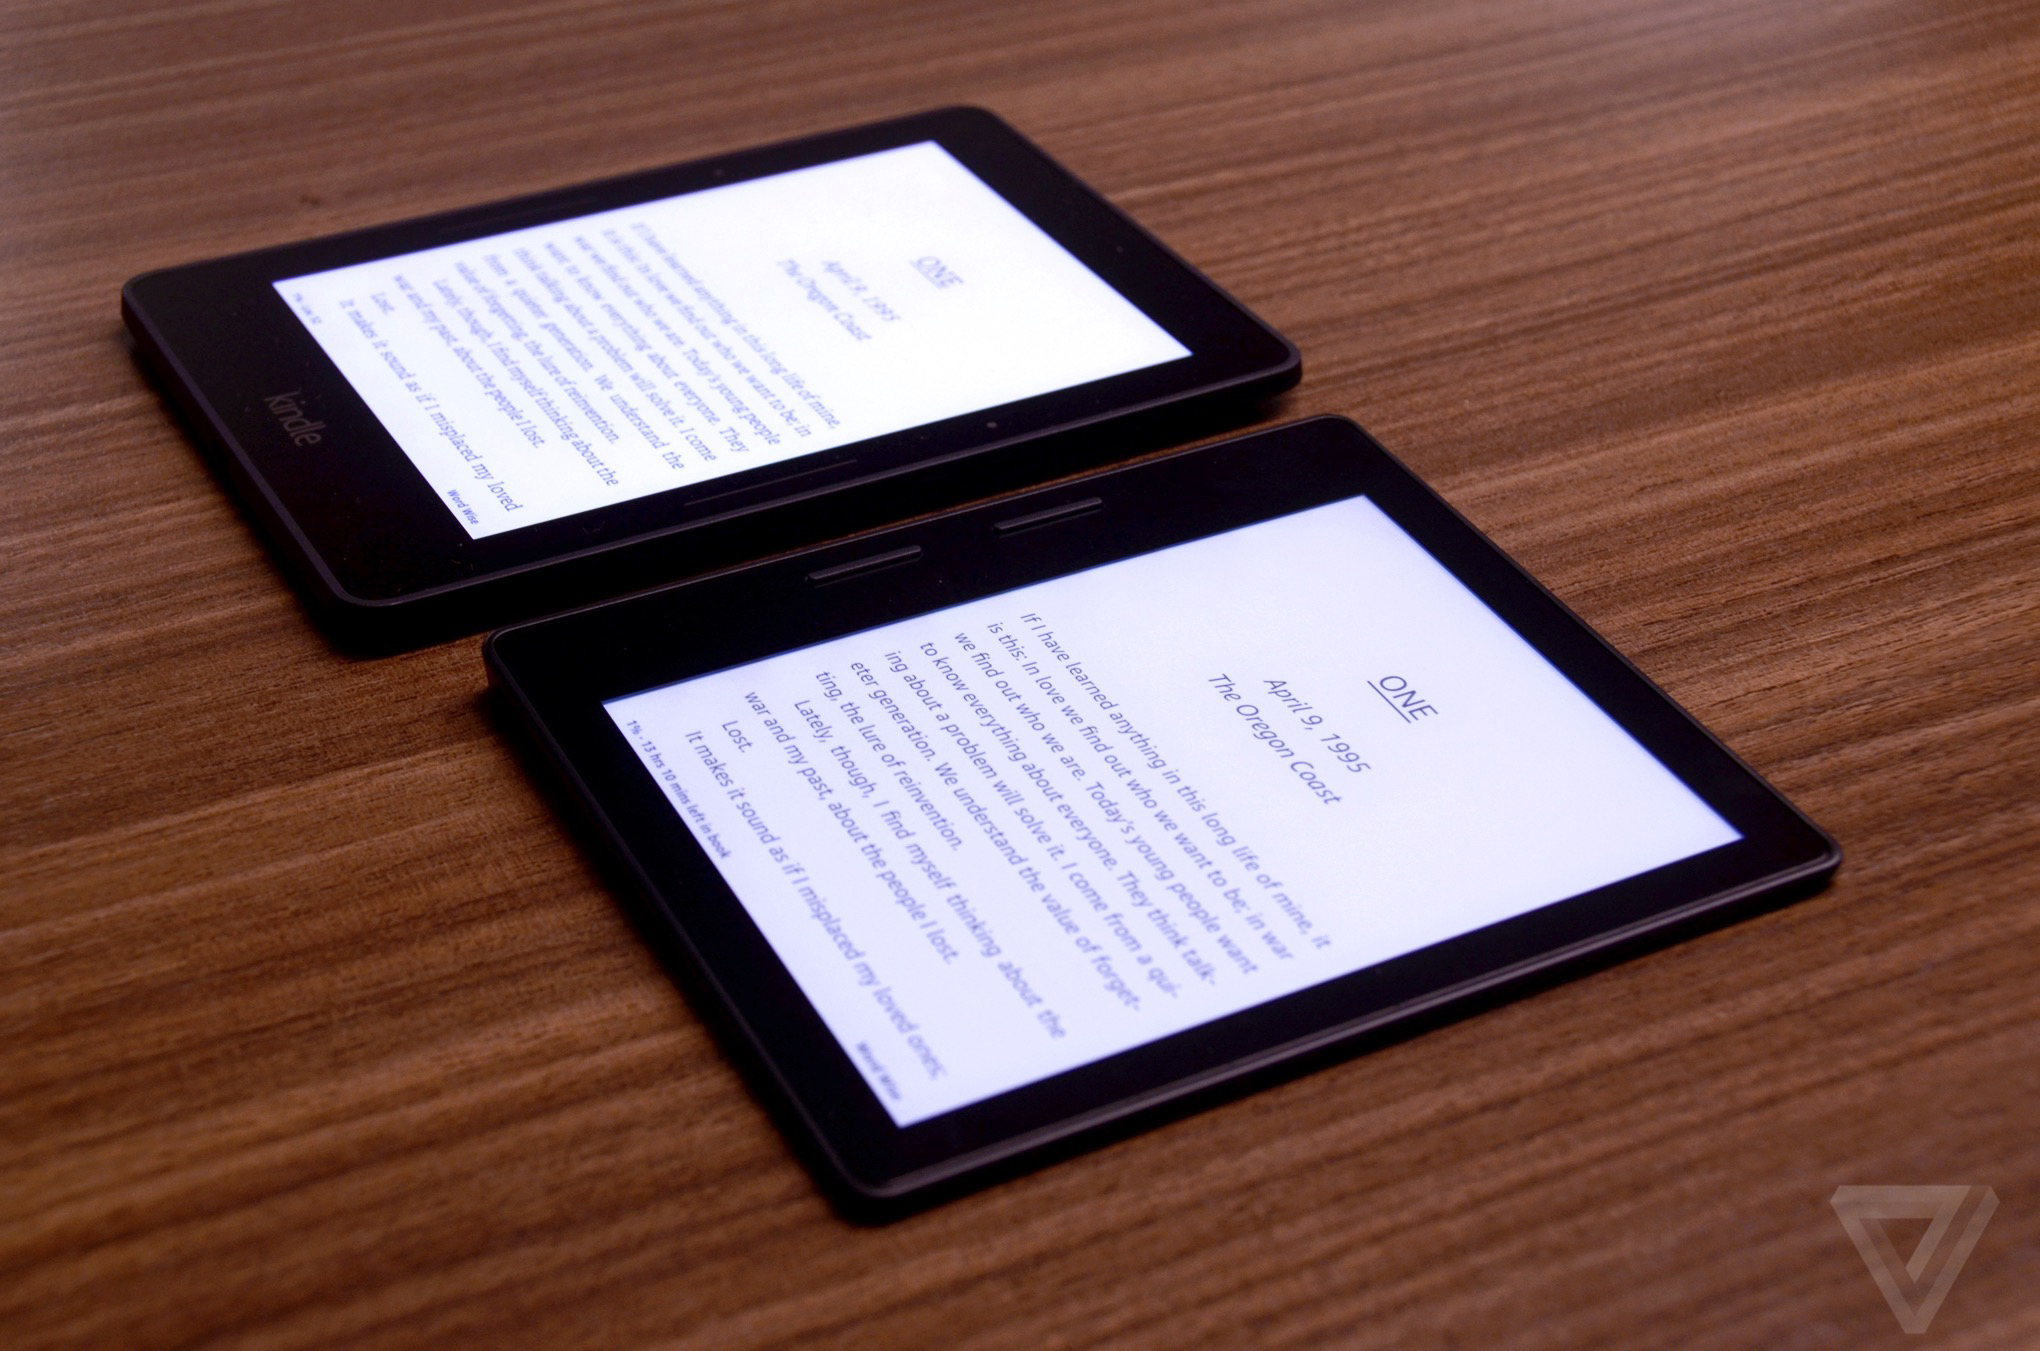 Amazon's Kindle Oasis is the funkiest e-reader it's ever